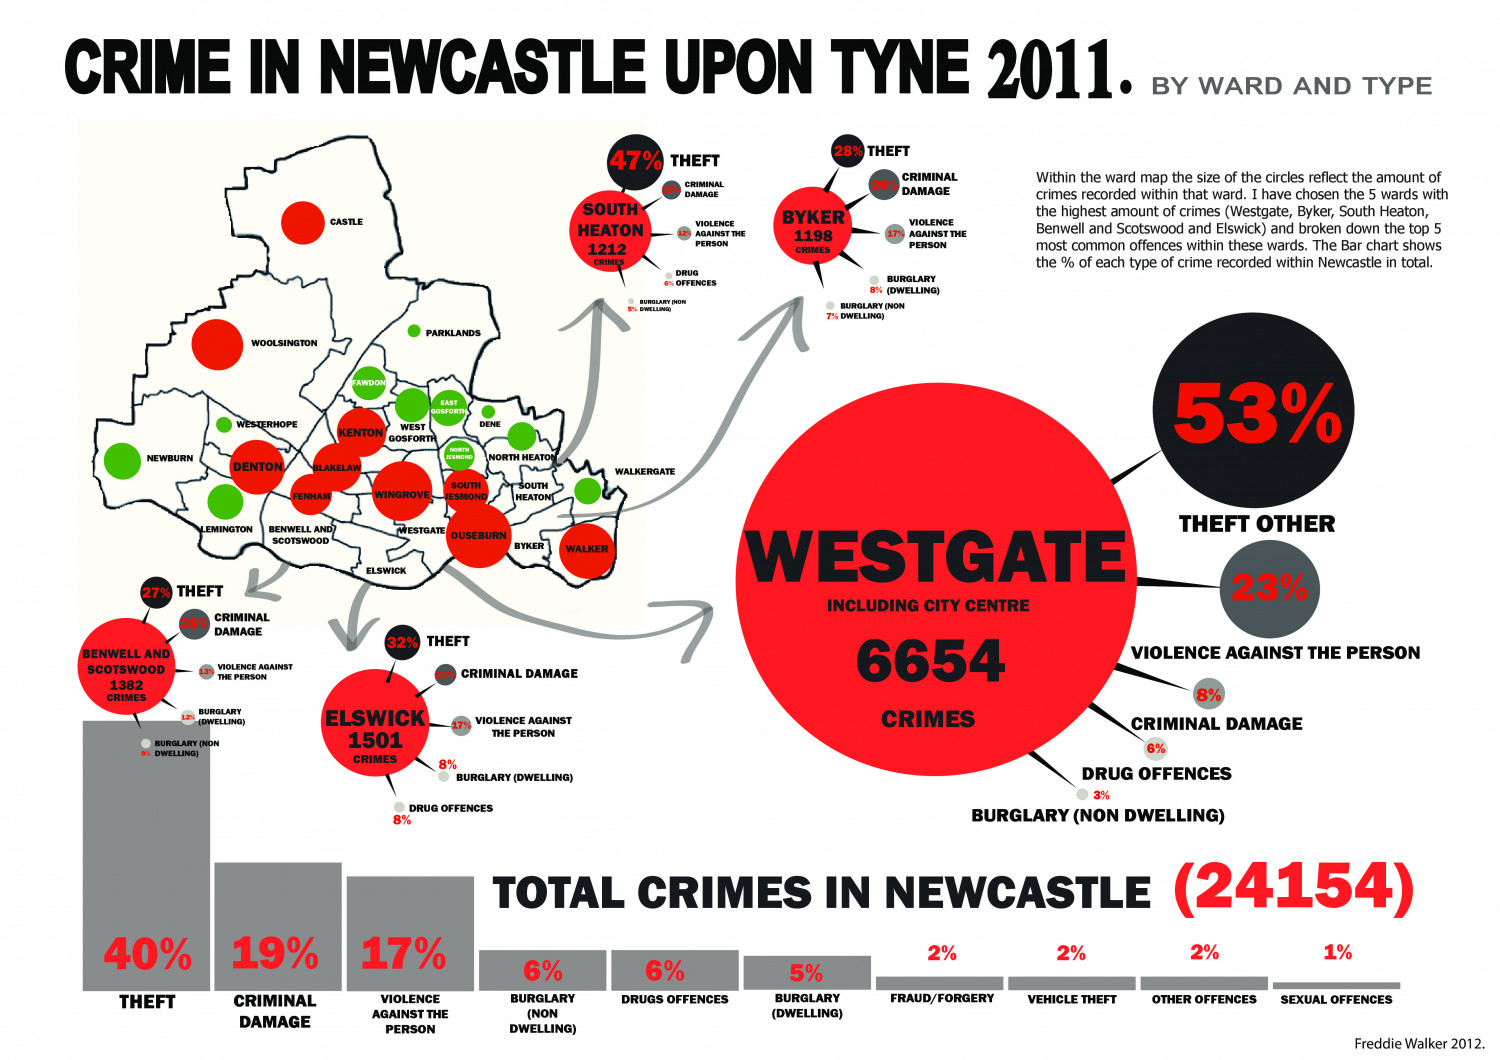 Crime in Newcastle upon Tyne 2011 Infographic